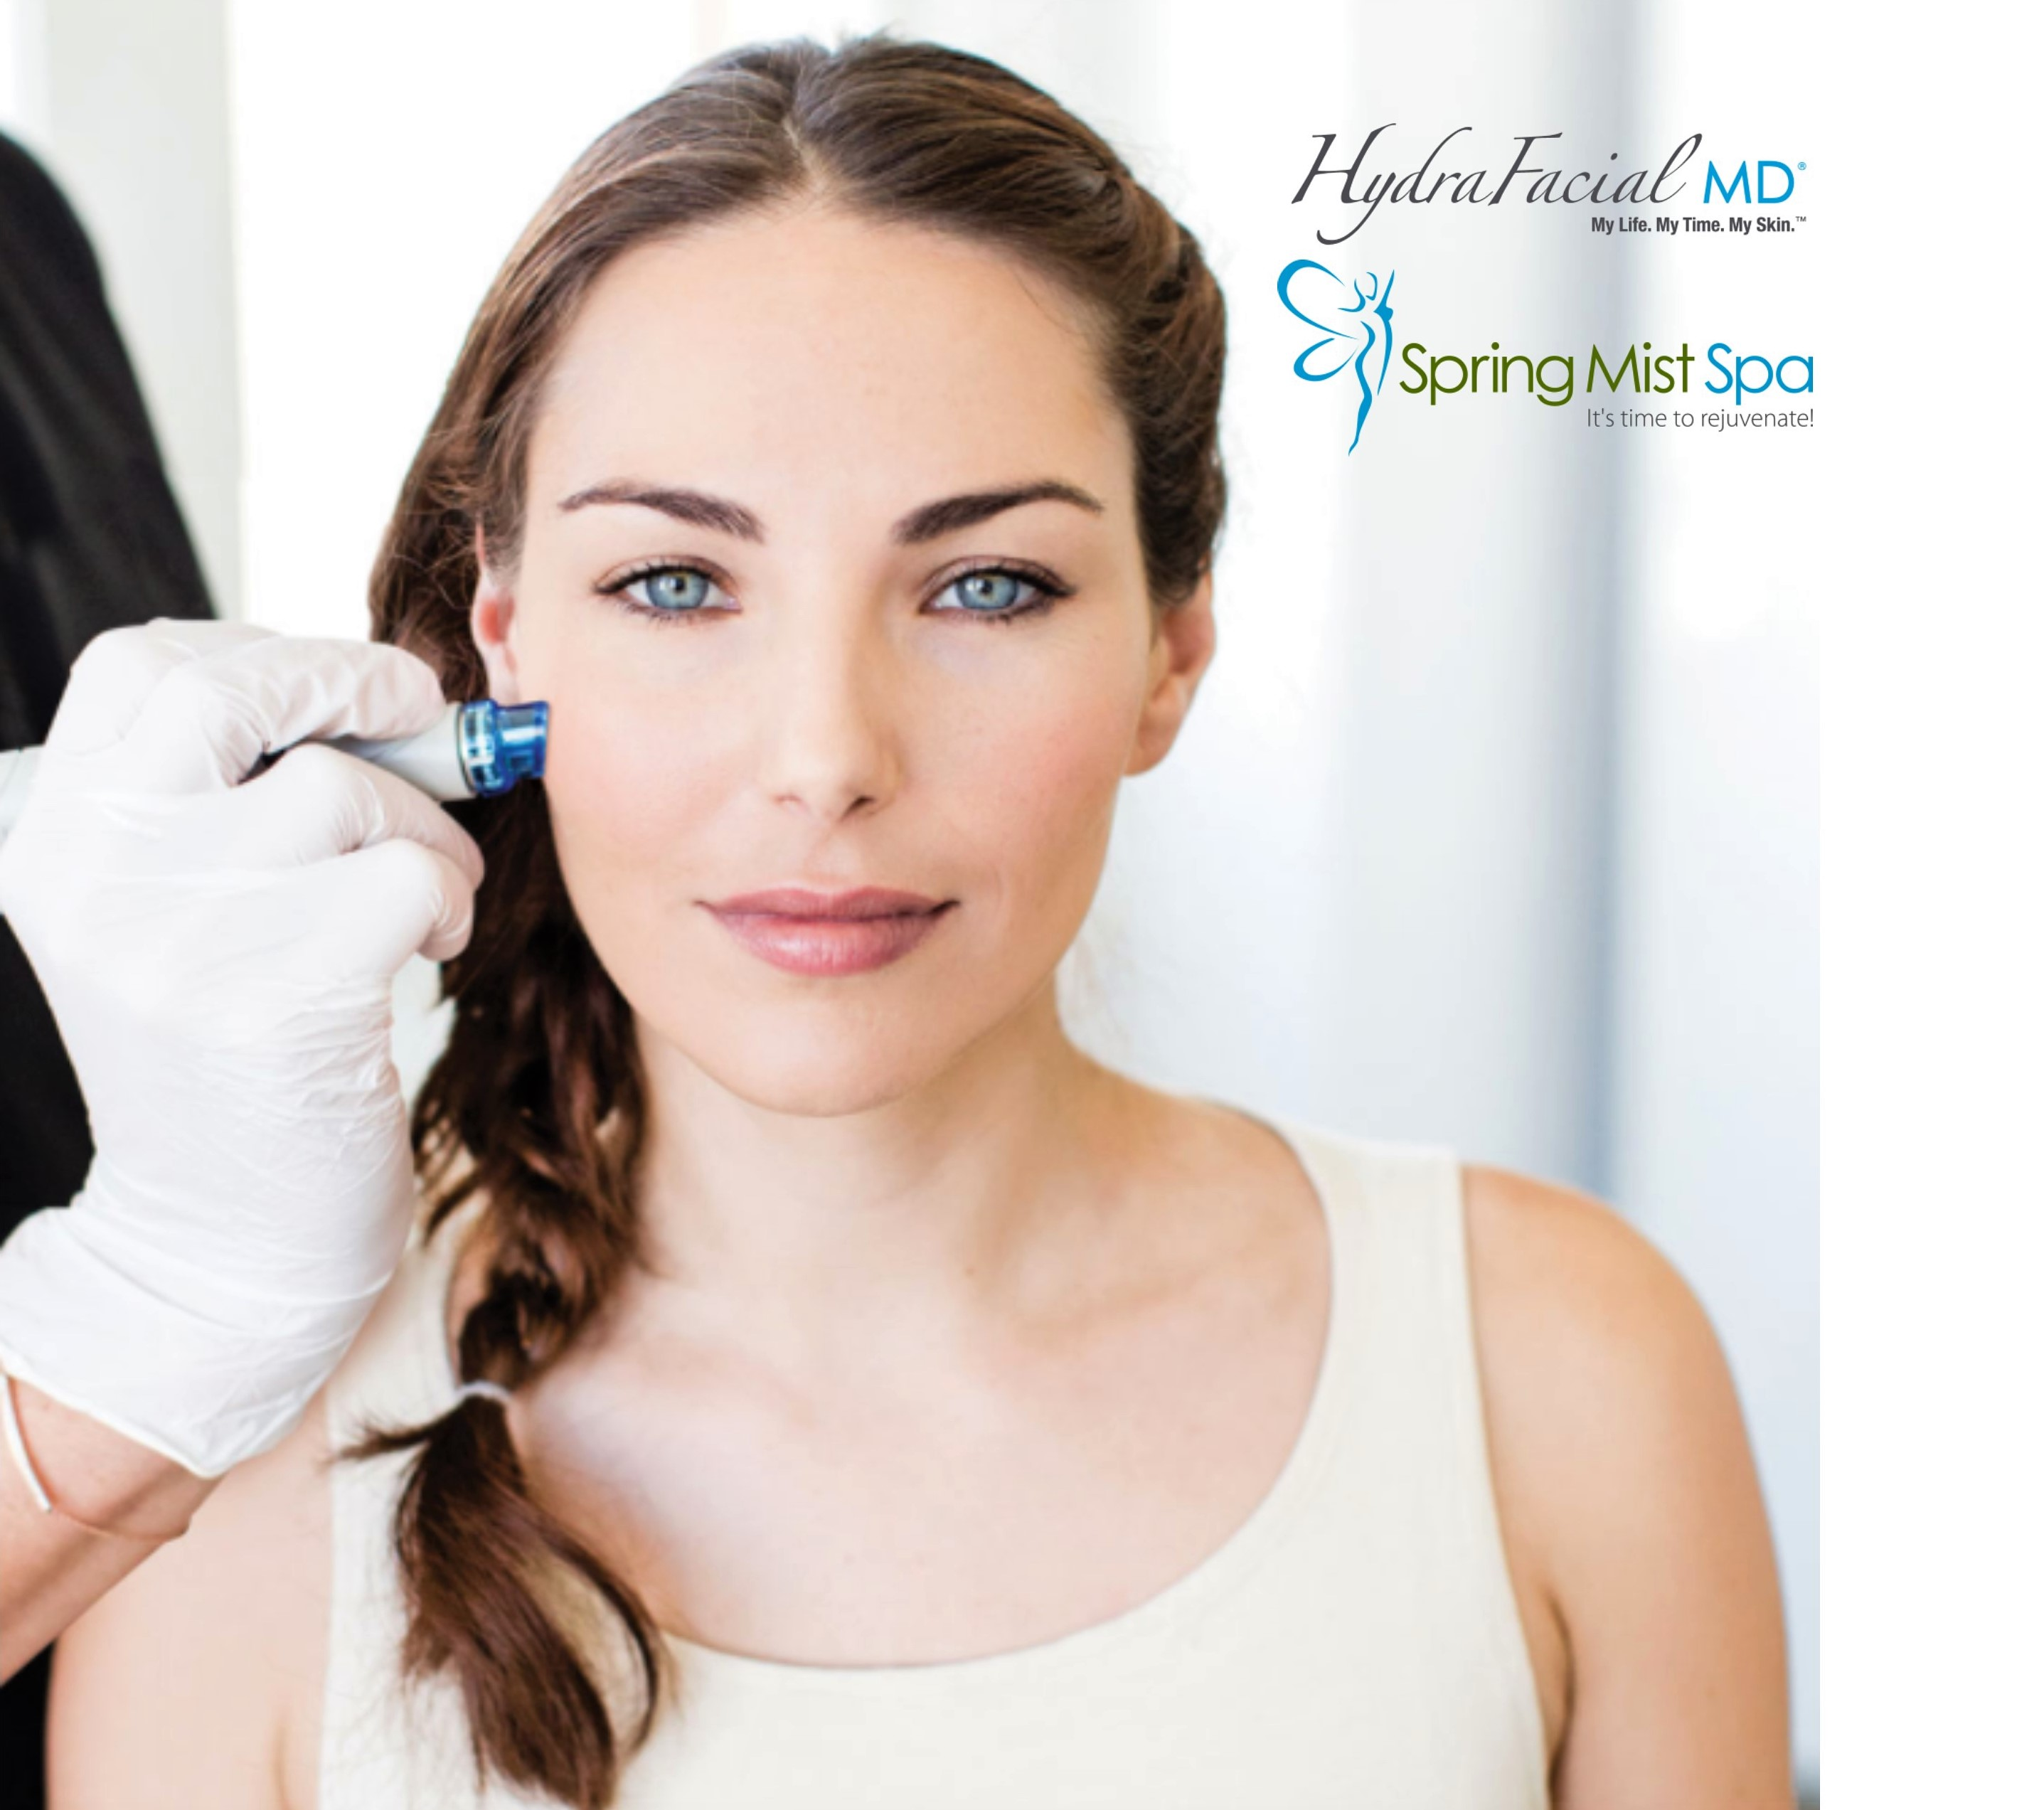 Spring Mist Milton Spa Specials - Look your best this summer with HydraFacial Super Facial -August 2019 Special